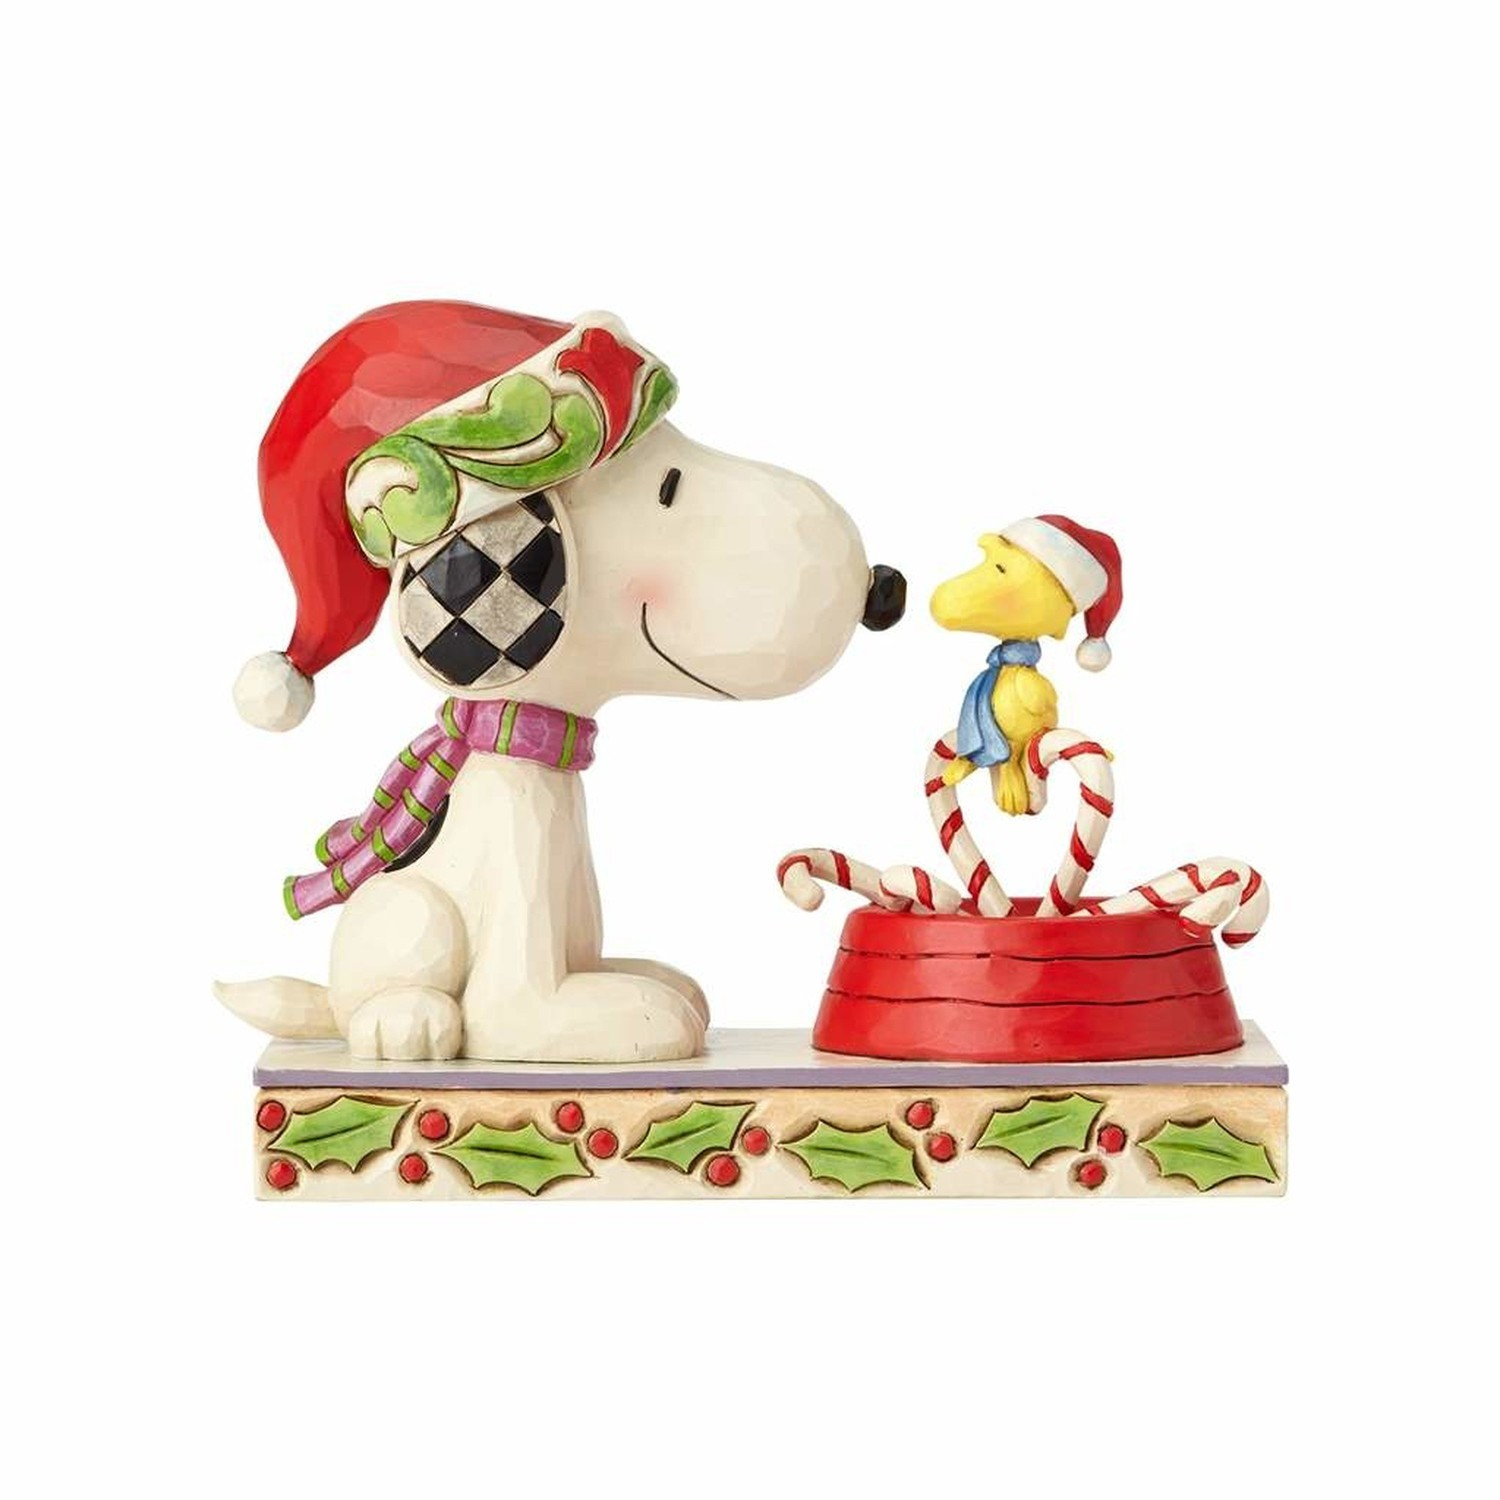 Christmas Snoopy.Candy Cane Christmas Snoopy Woodstock With Candy Cane